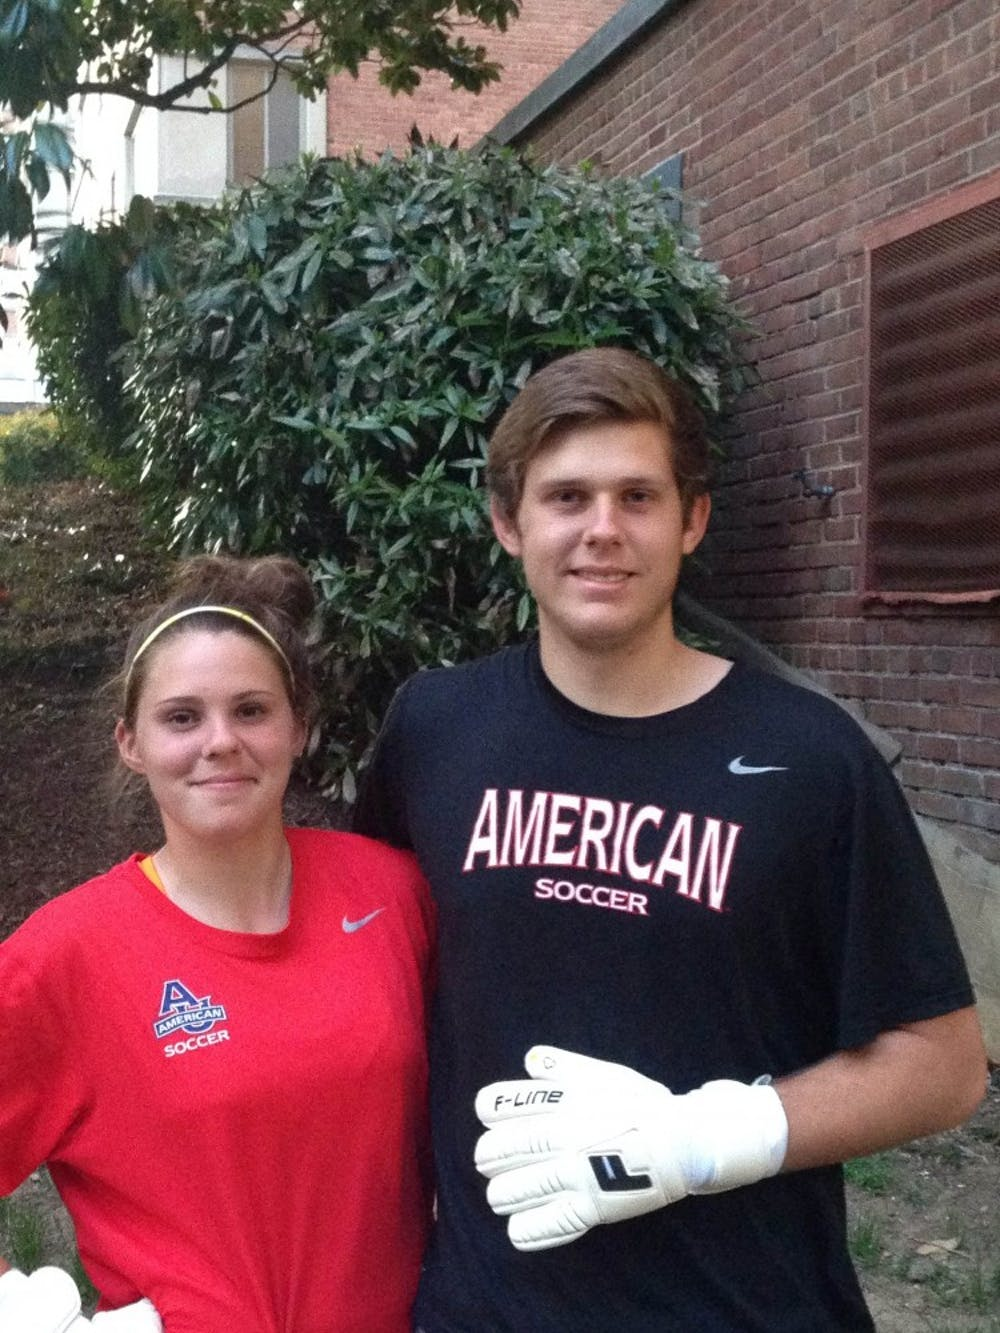 Lifelong teammates: siblings bond on and off the playing field